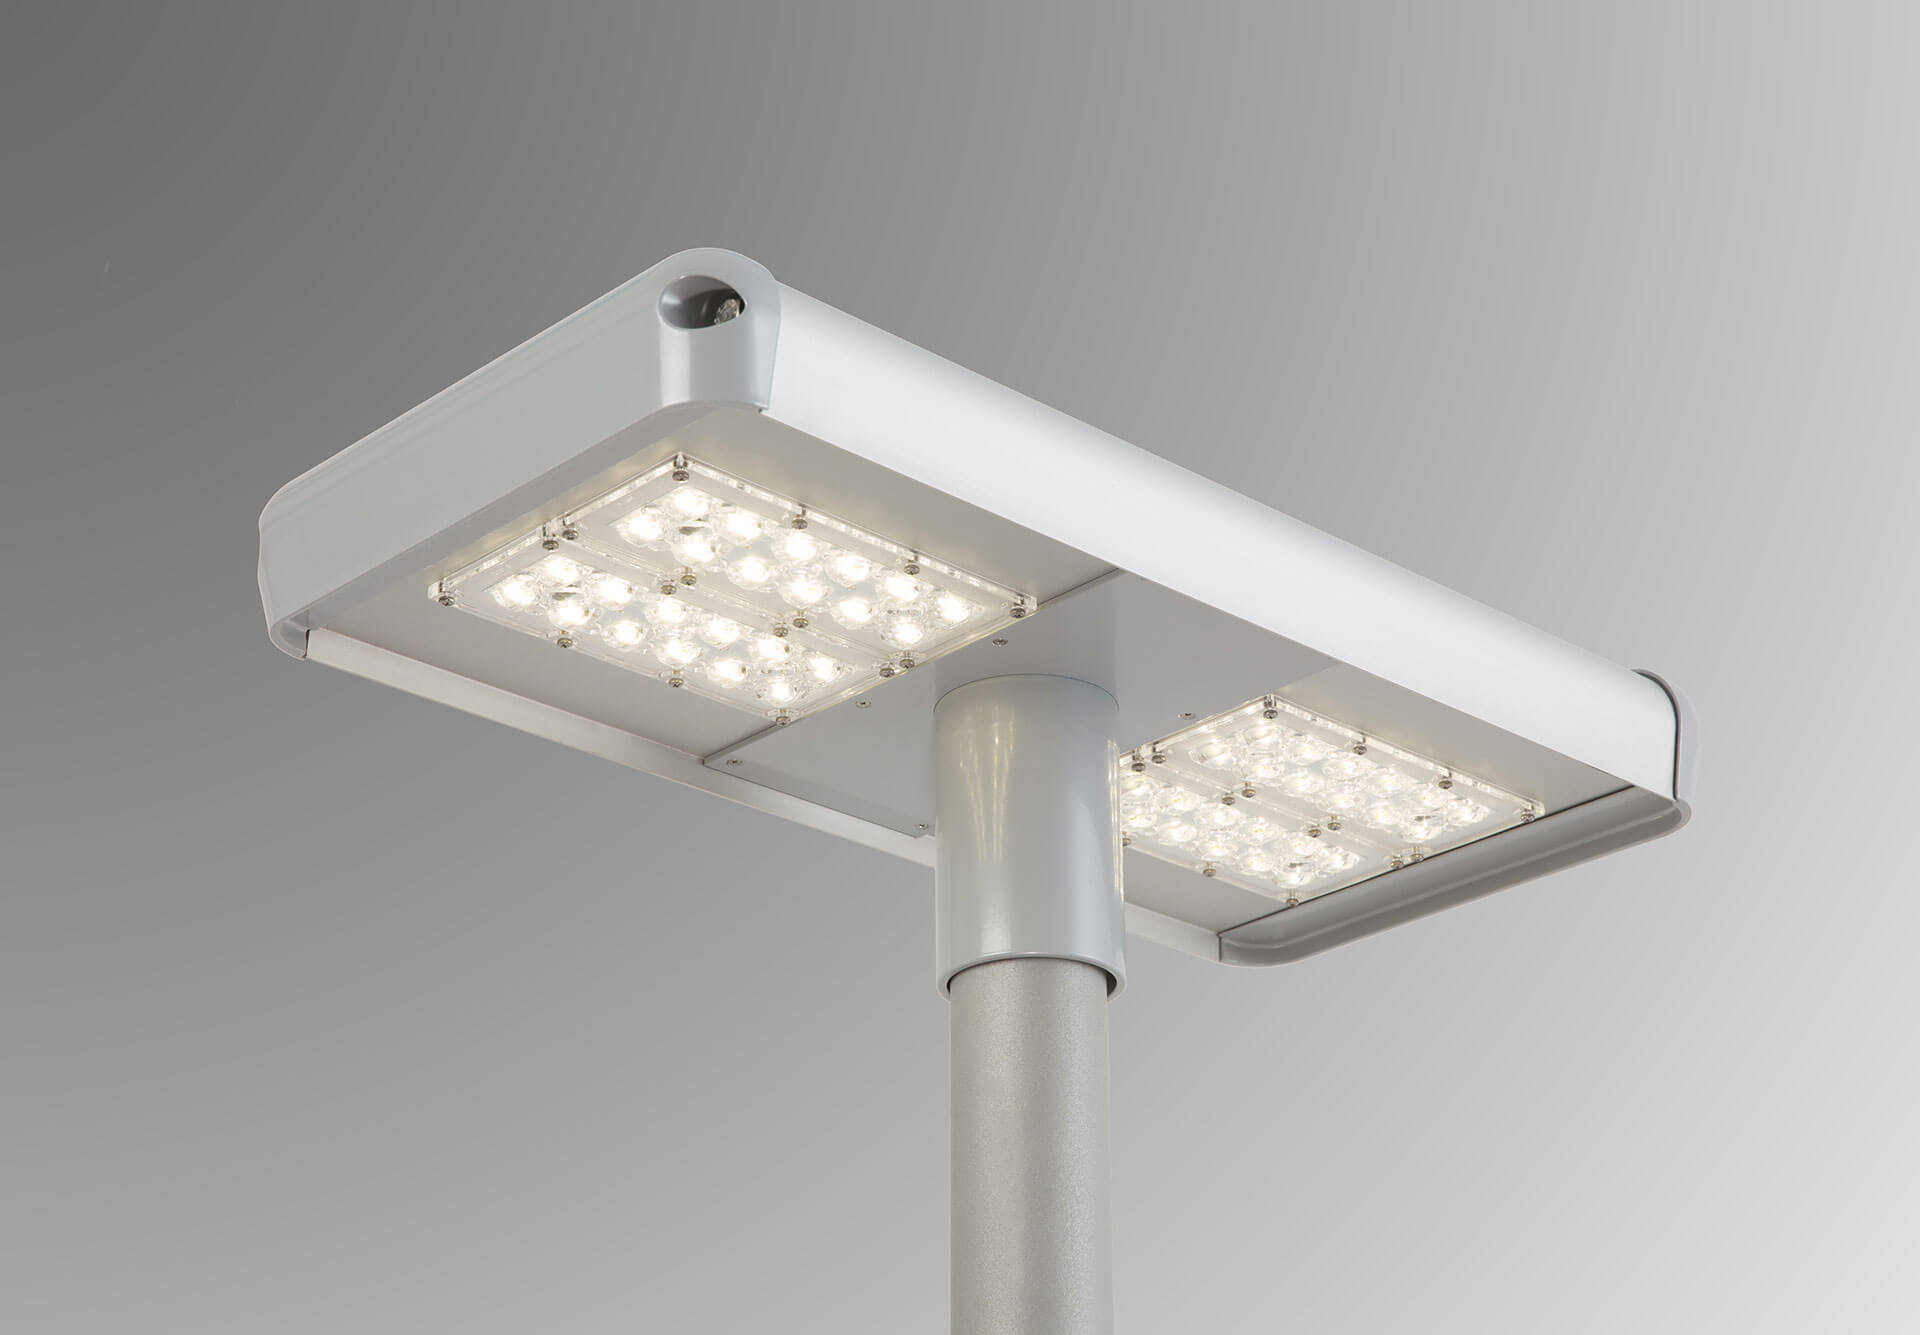 Home T Lamp – symmetrical light for parking lots and parks